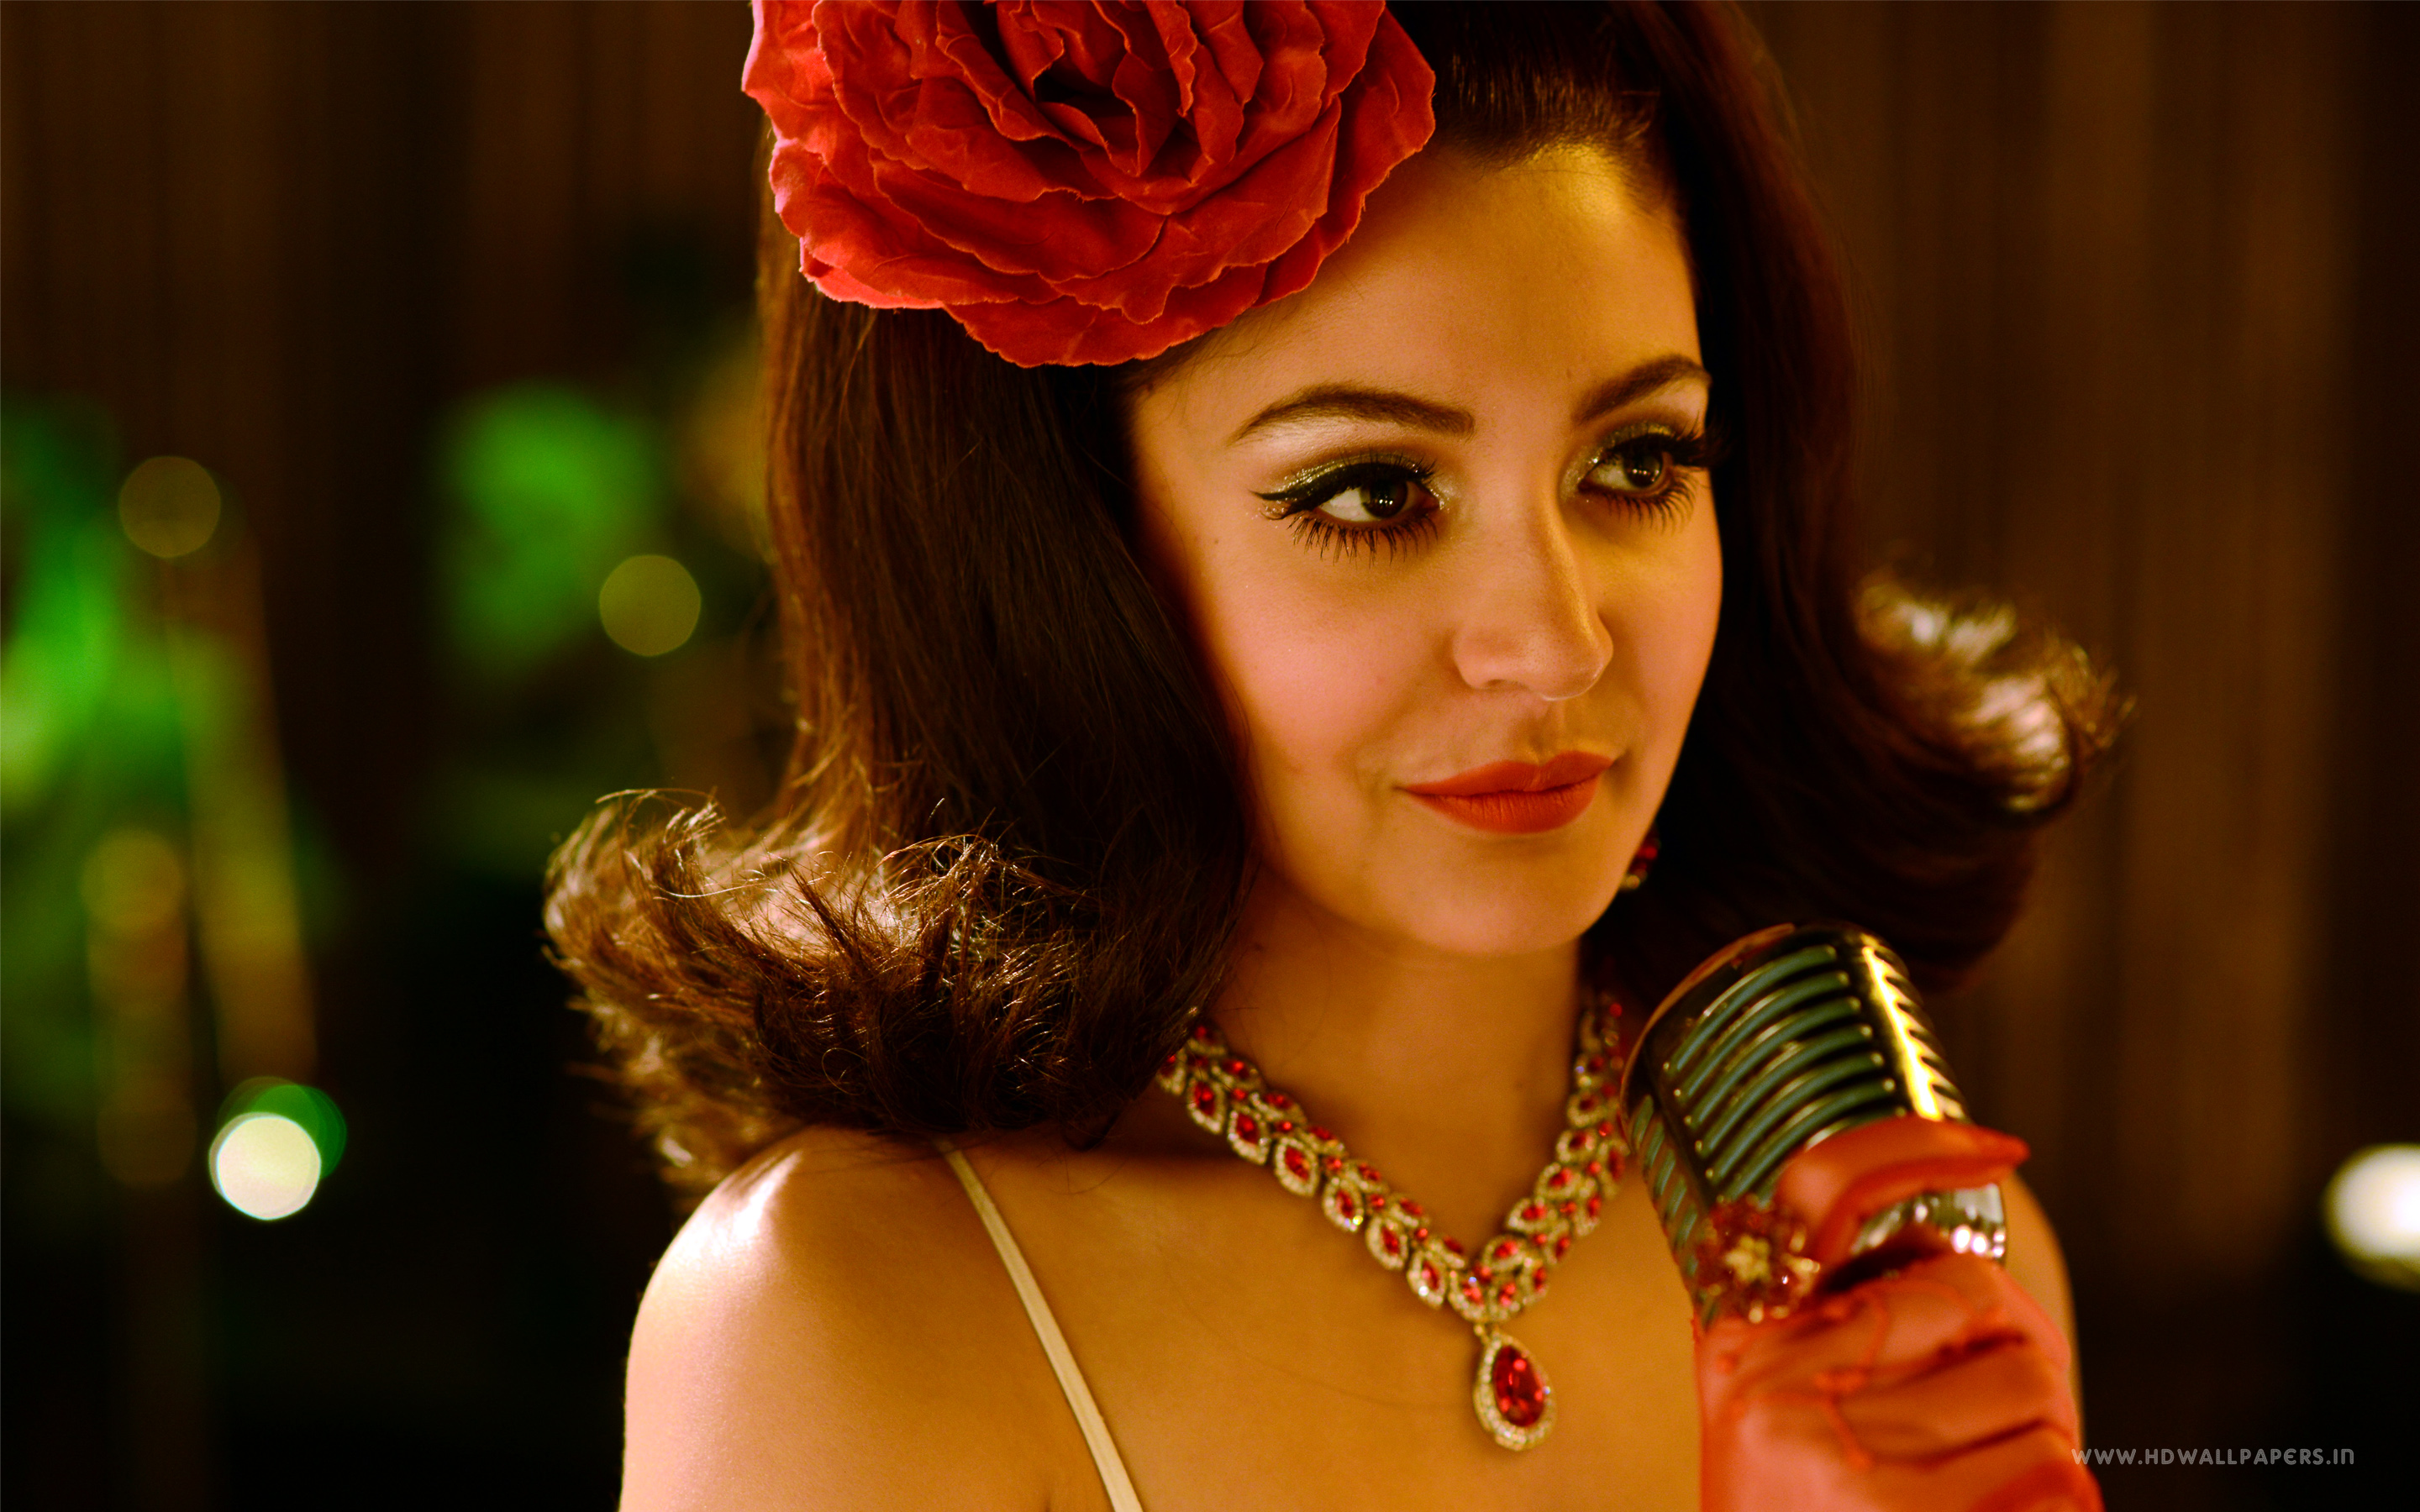 Anushka Sharma in Bombay Velvet wallpaper